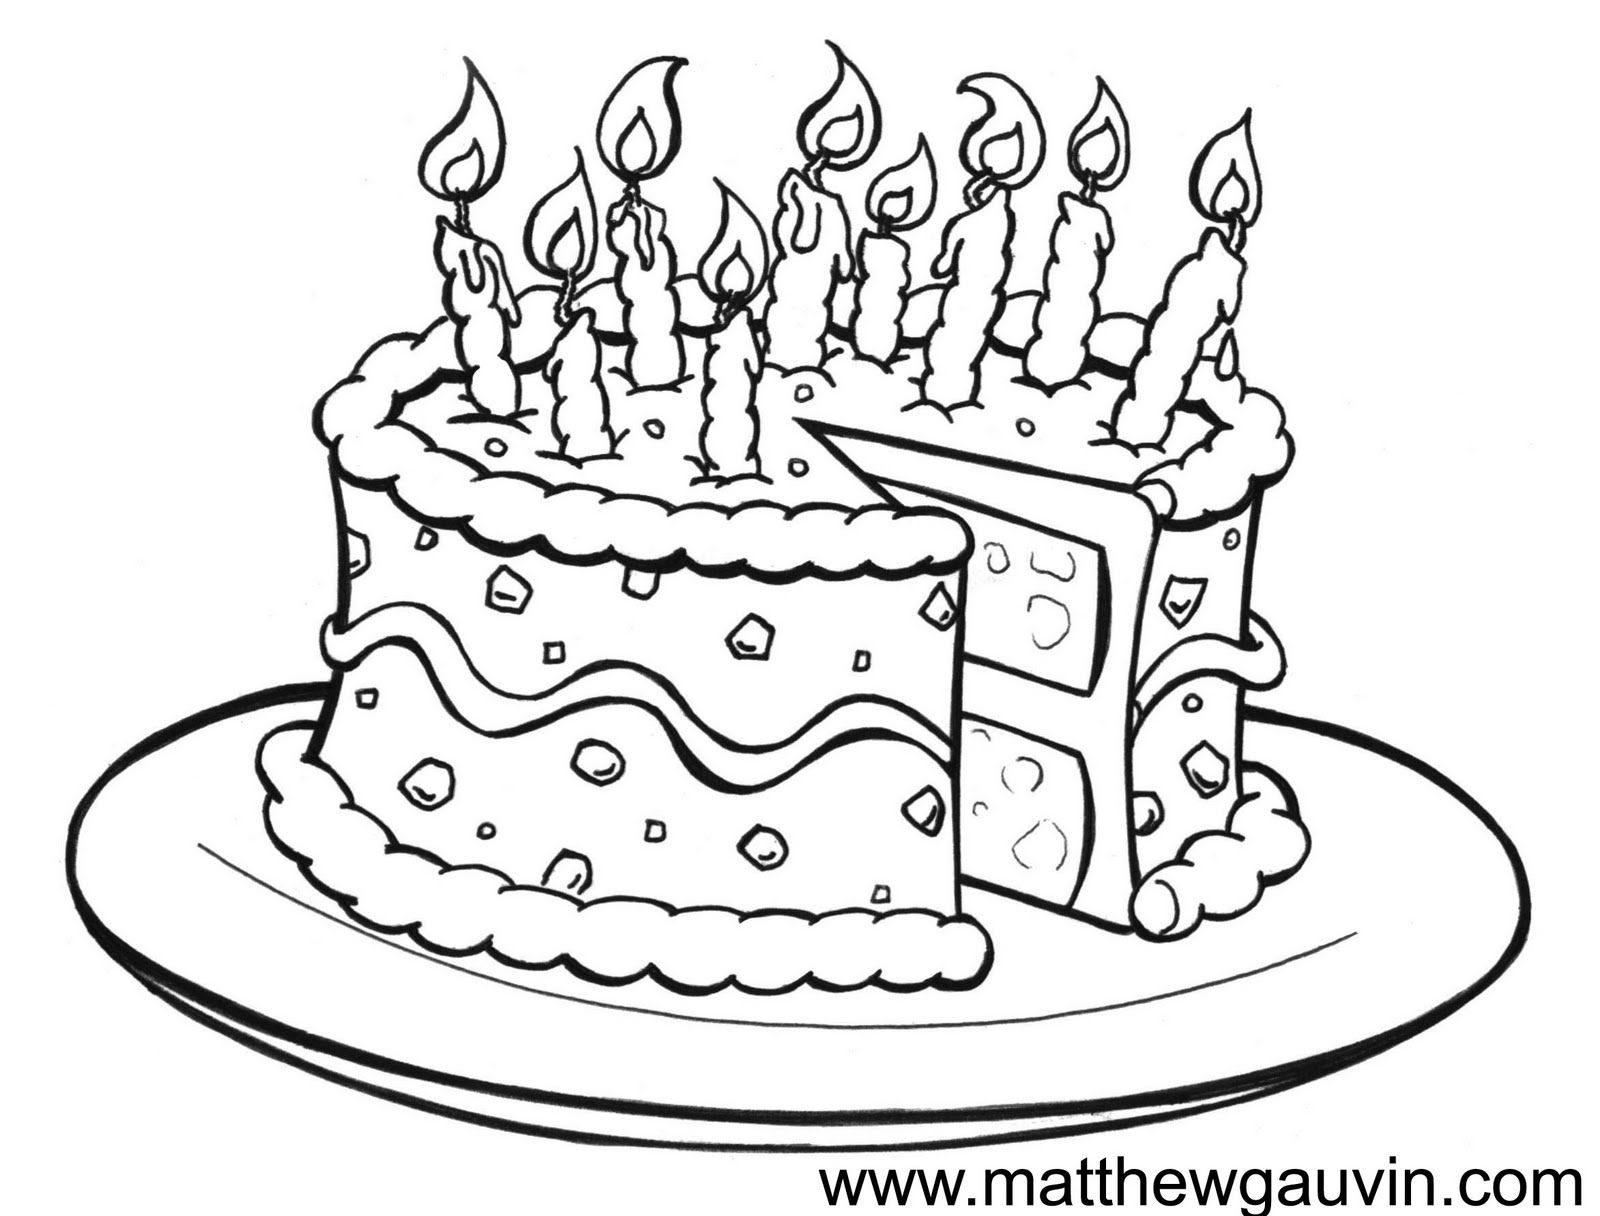 1600x1216 Photos Birthday Cake Drawings,